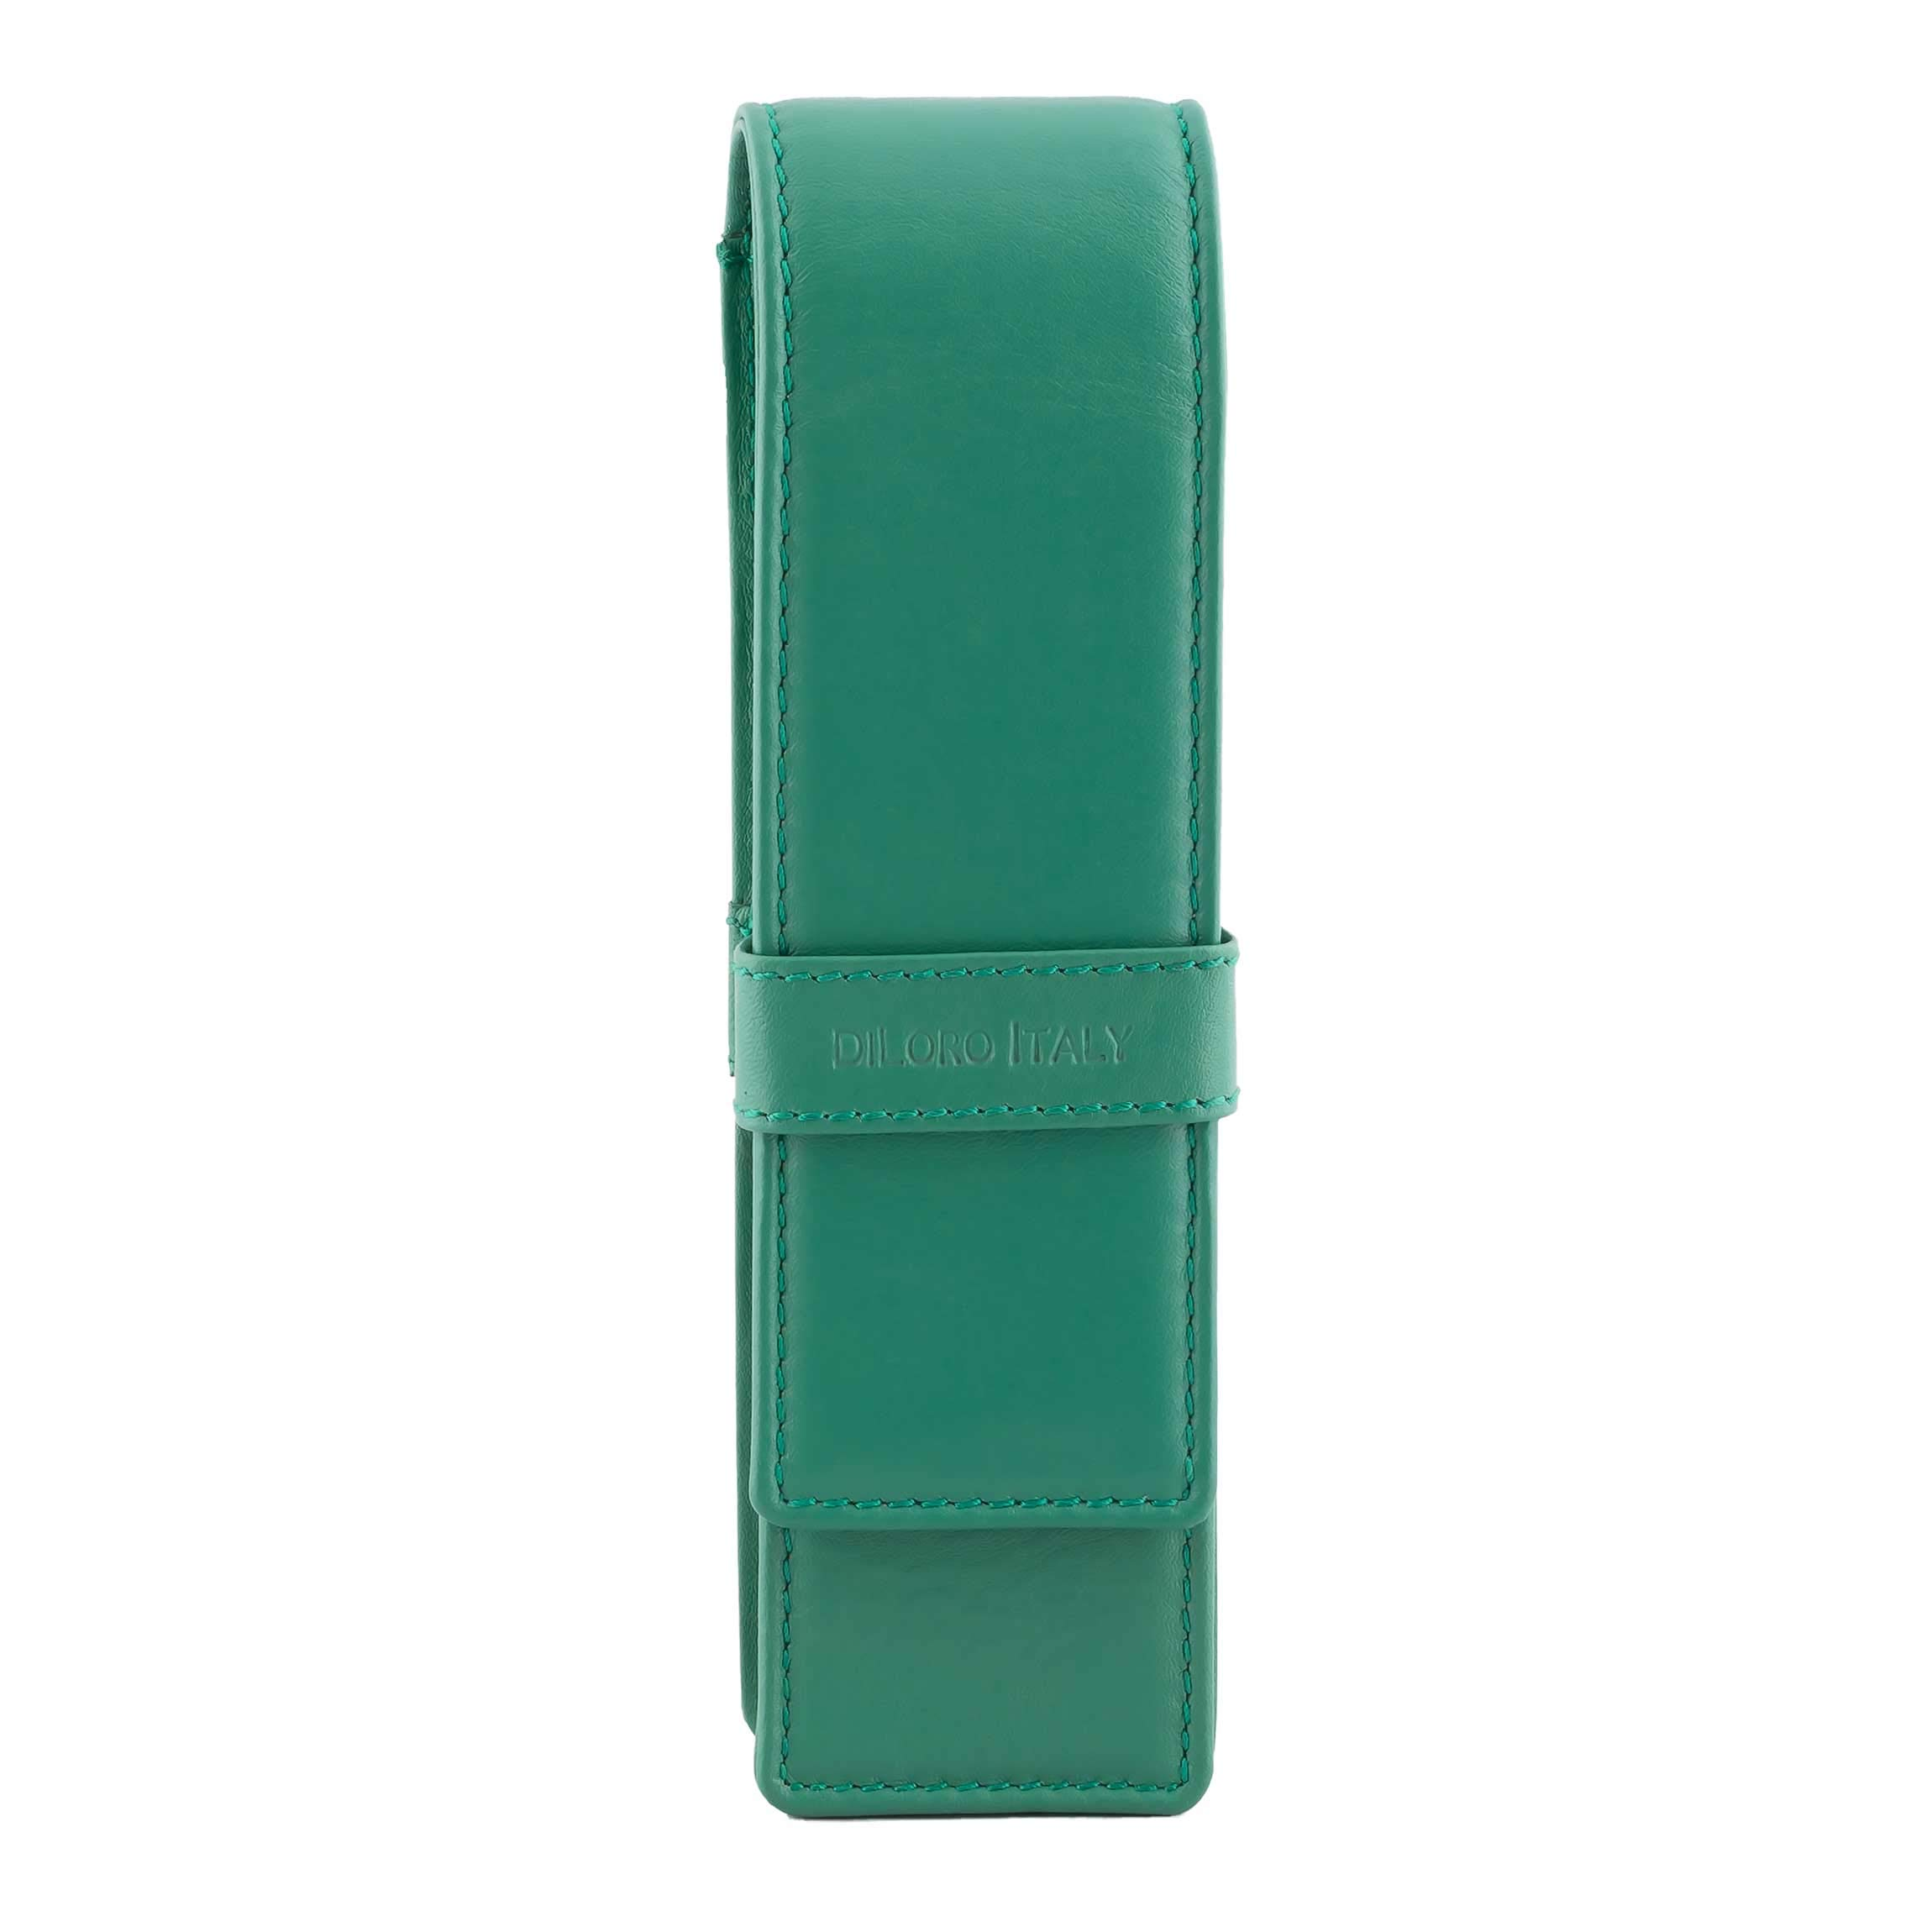 DiLoro Leather Pen Case Pouch Holder for Two Fountain Pens Ballpoint Rollerball Pen or Pencils (Light Green)